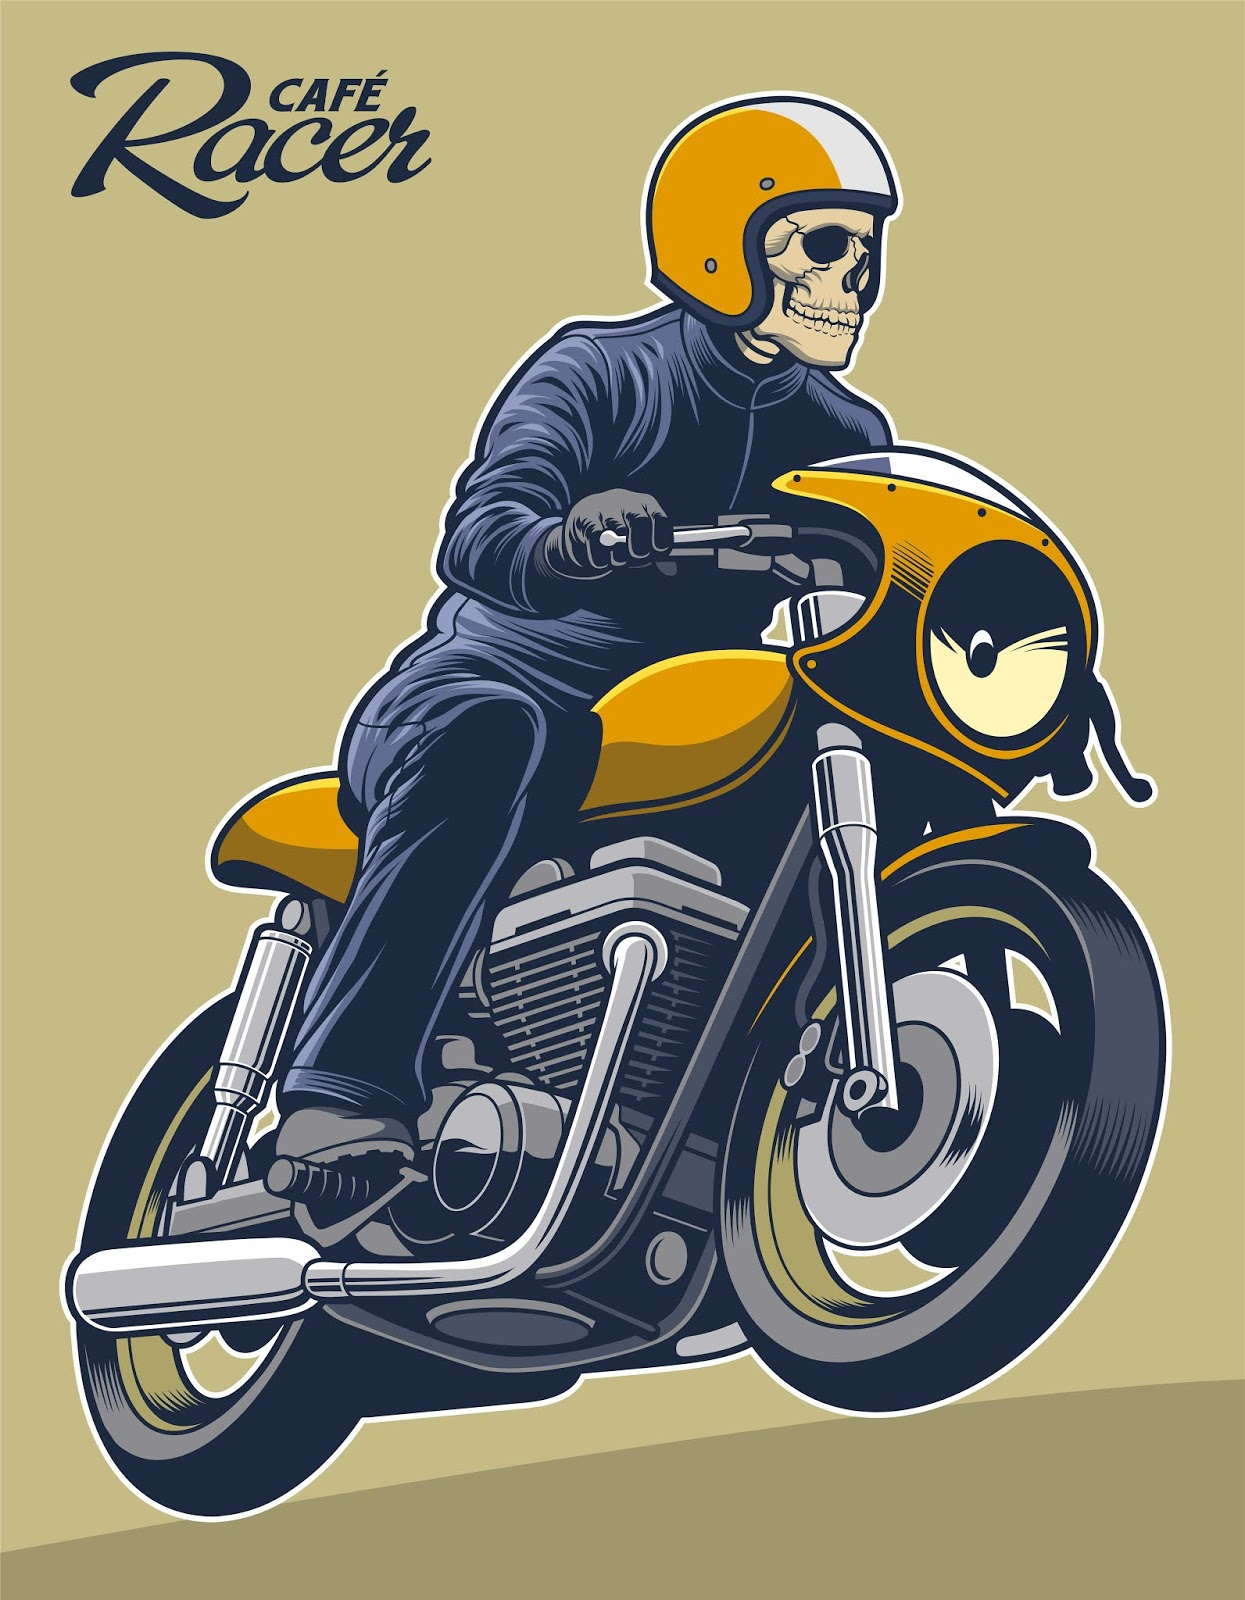 Cafe Racer Vector Illustration Free Download Vector CDR, AI, EPS and PNG Formats